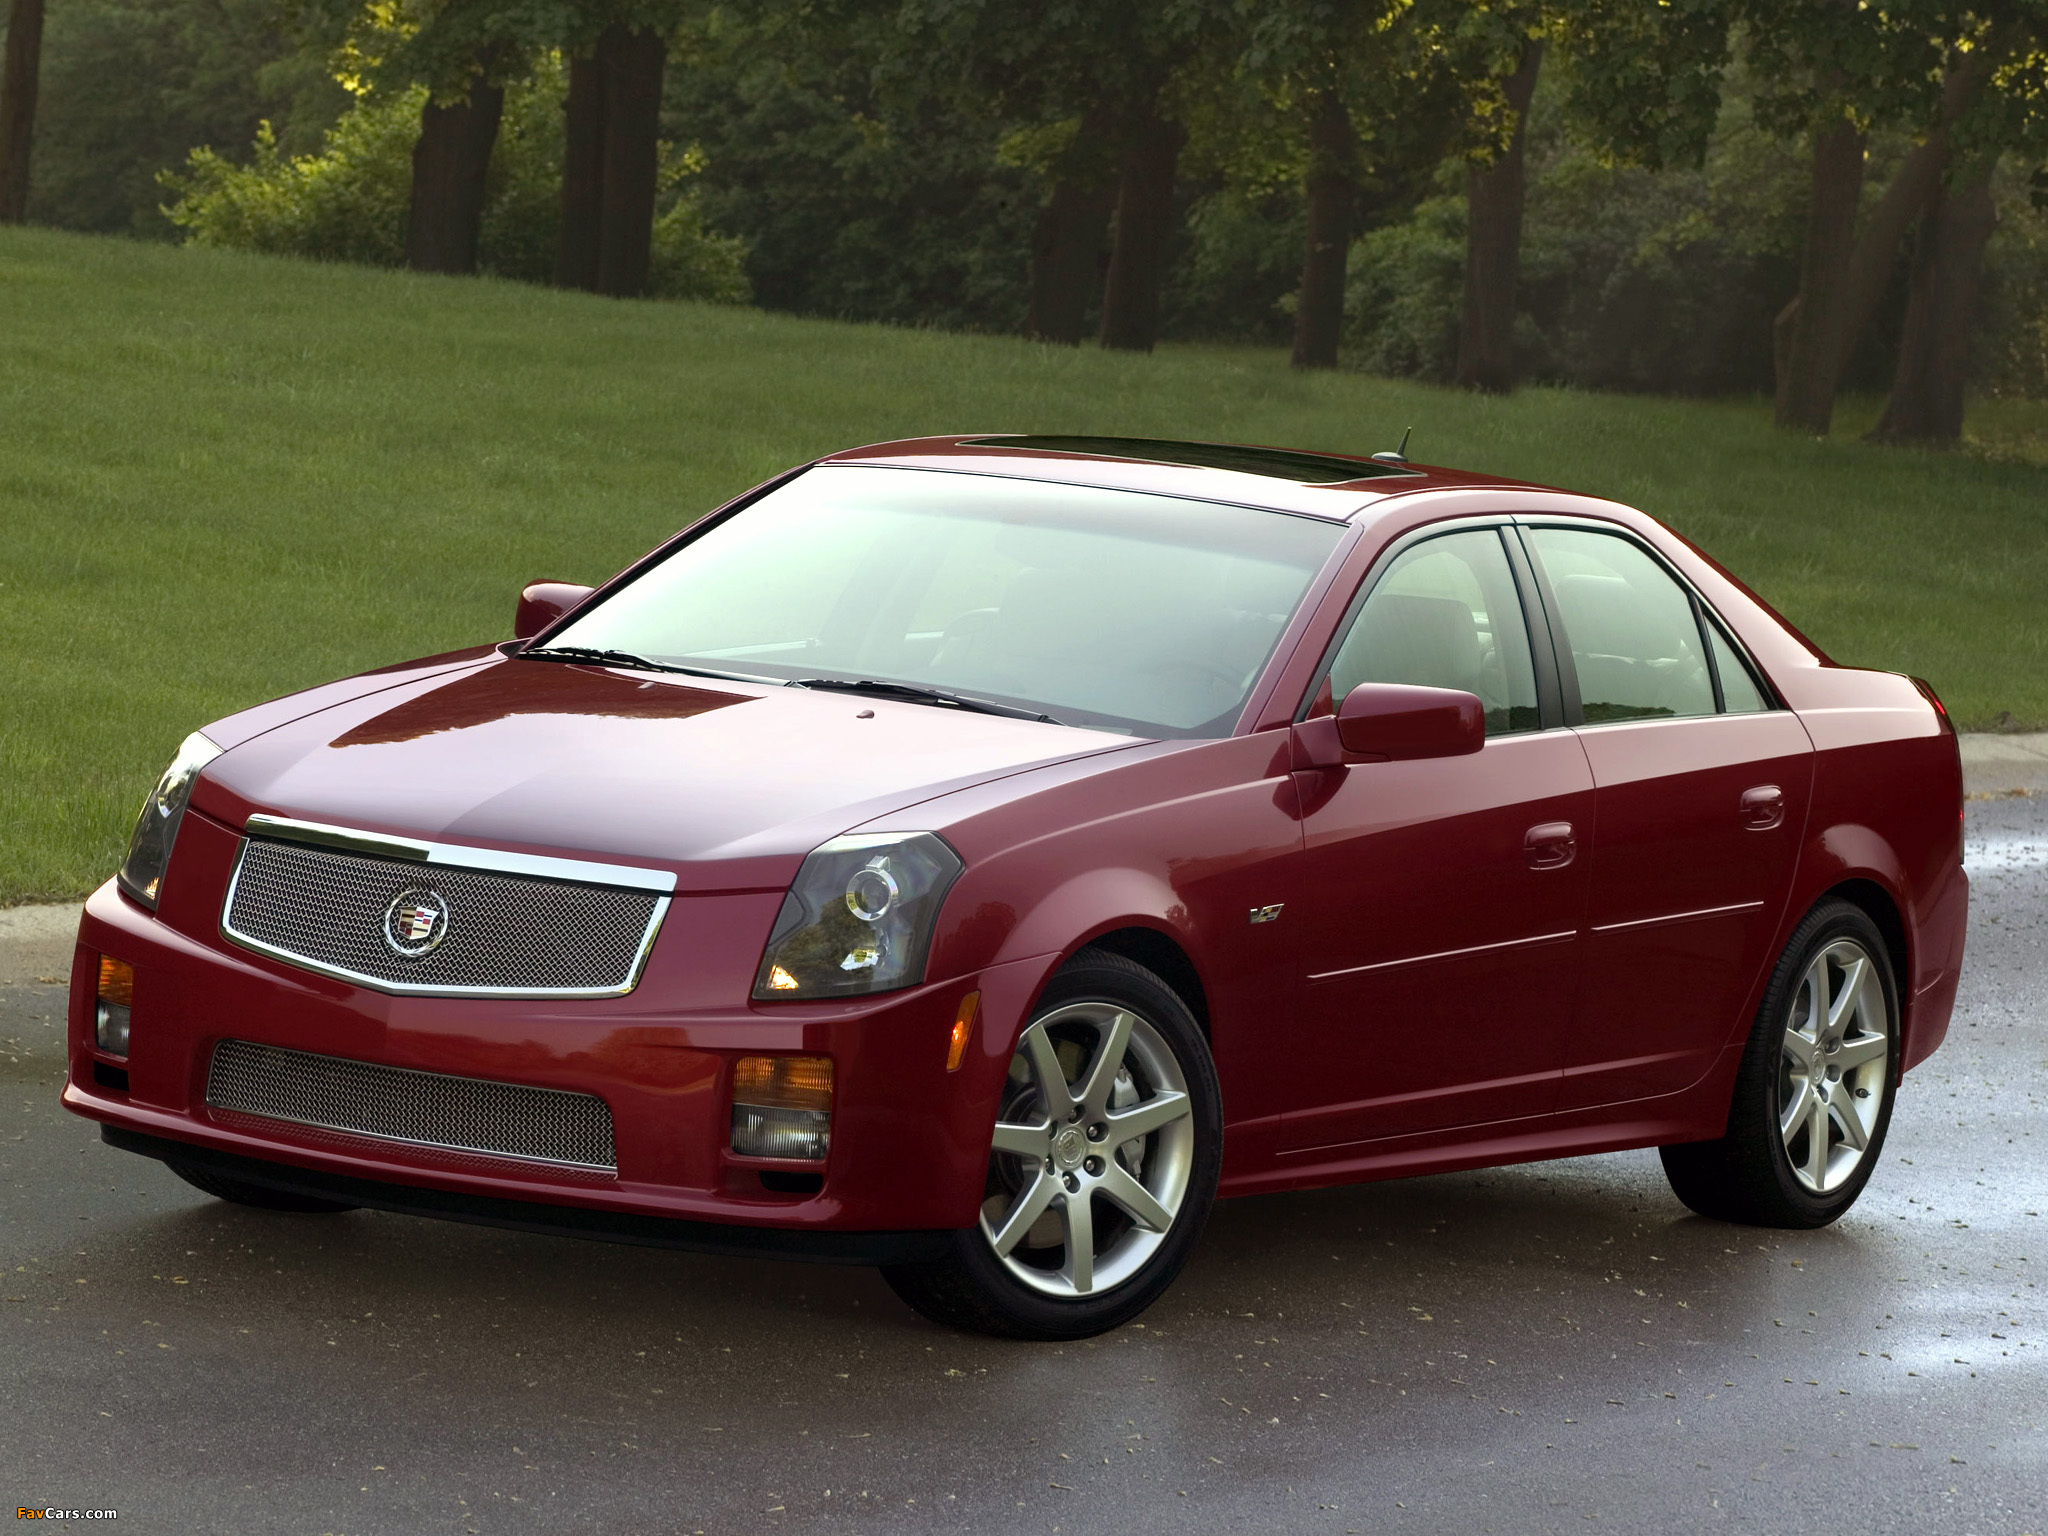 cadillac cts v 2004 07 wallpapers 2048x1536. Black Bedroom Furniture Sets. Home Design Ideas